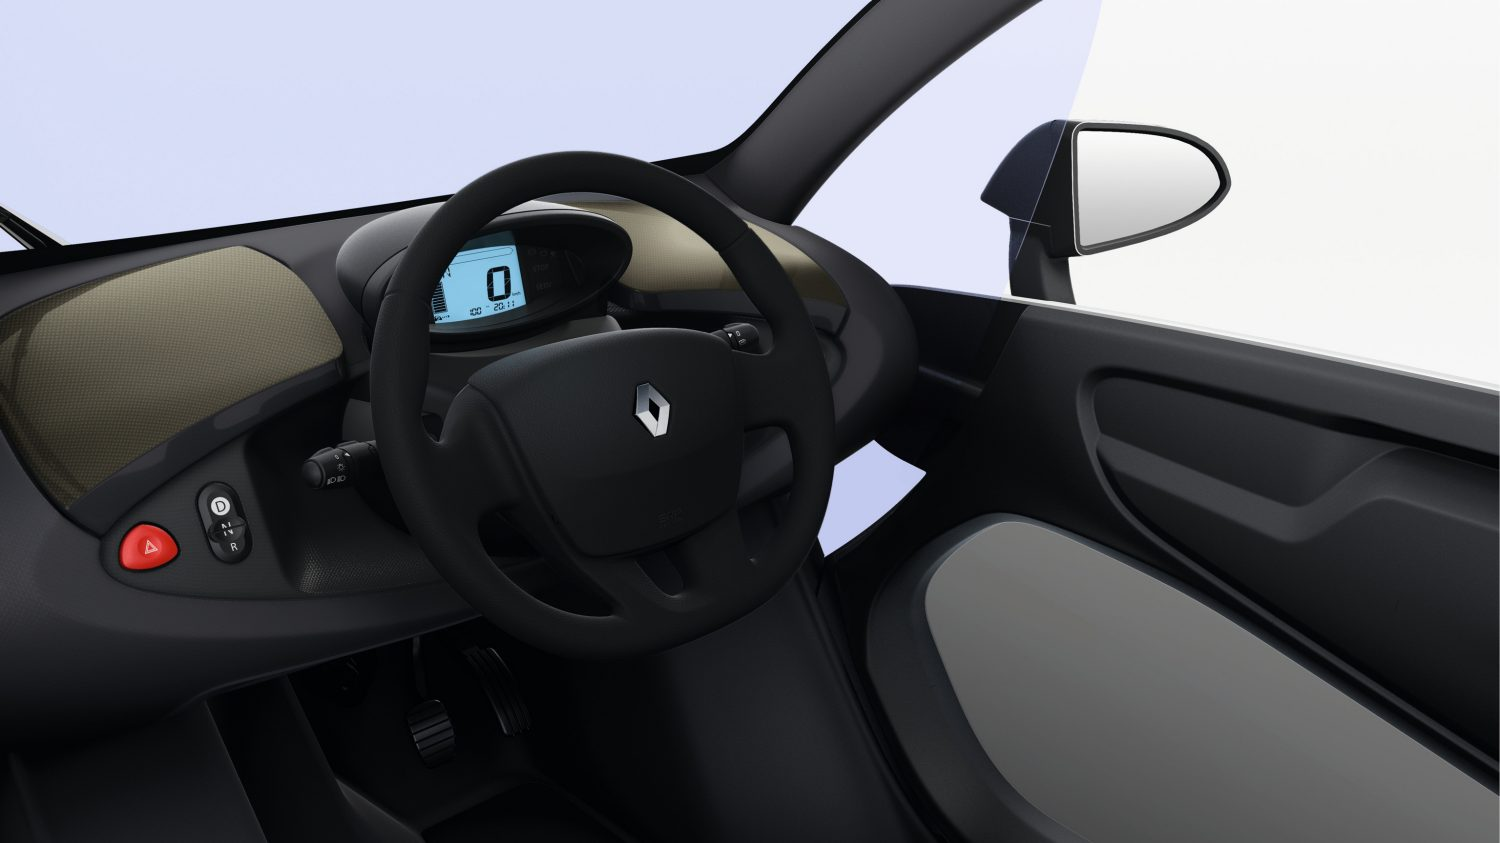 3575783renault-twizy-M09eph1-features-technoloy-001.jpg.ximg.l_full_m.smart